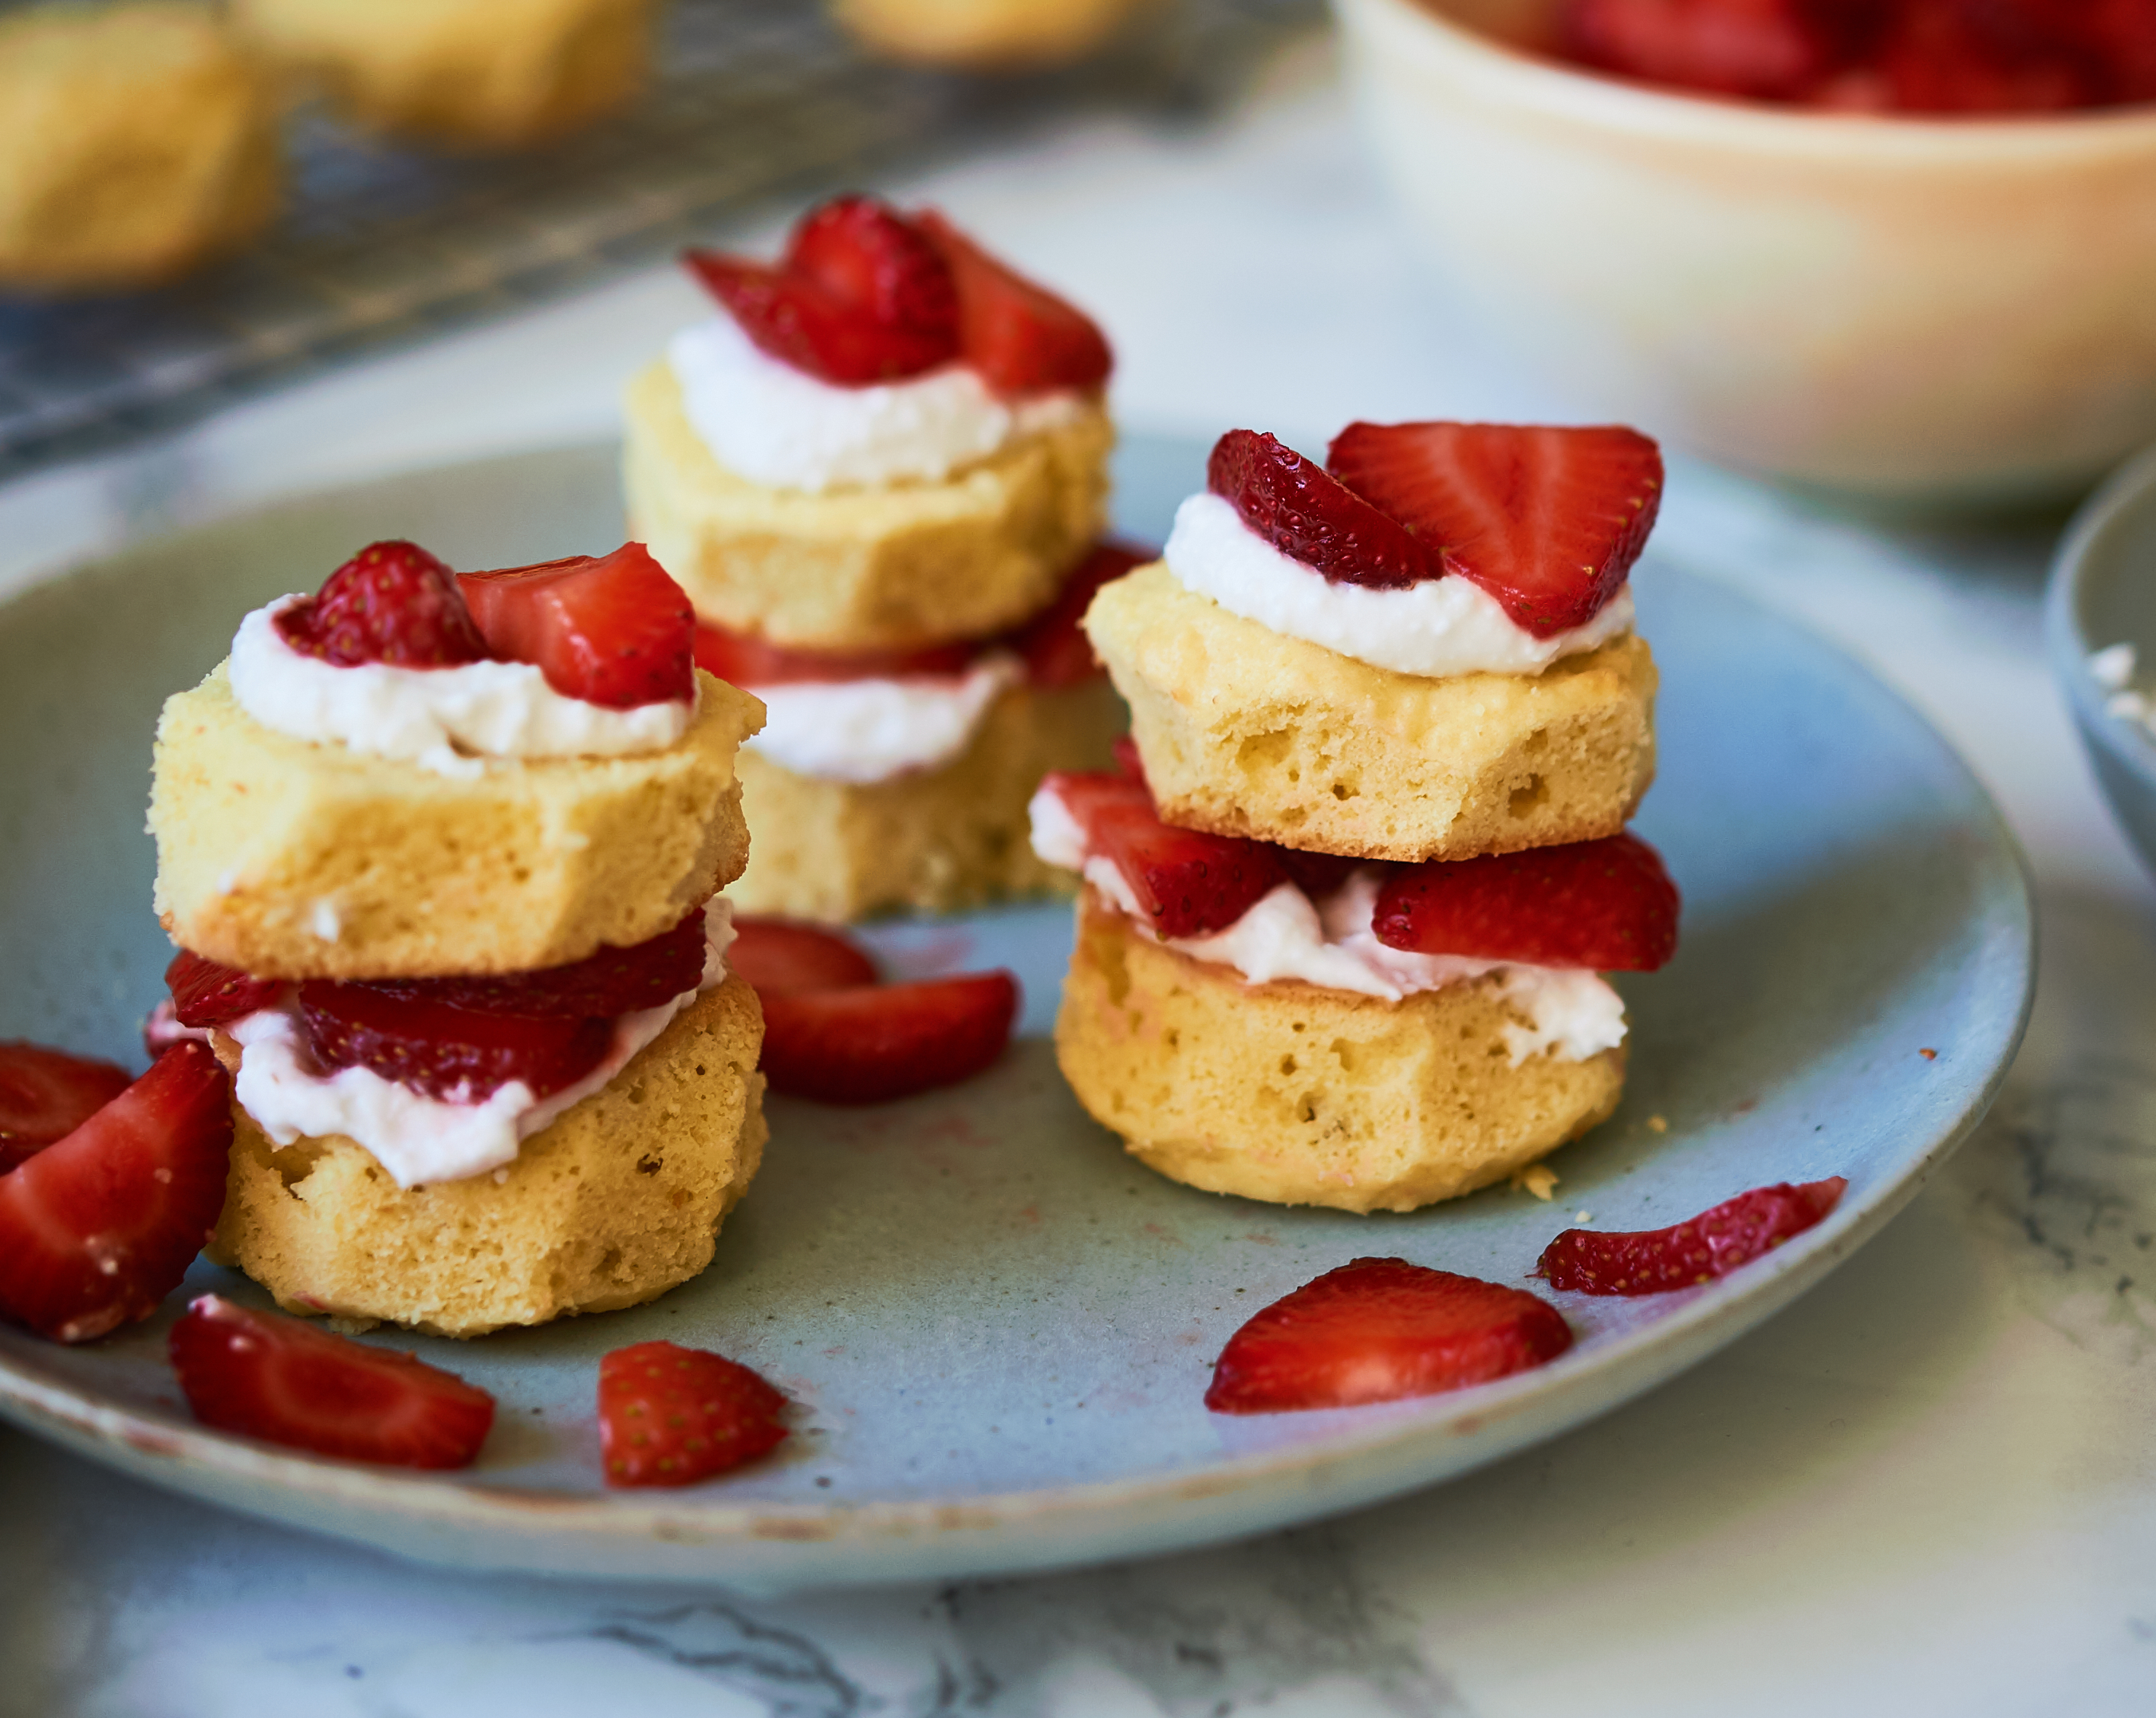 strawberry shortcake grain-free, gluten-free, sugar-free, paleo